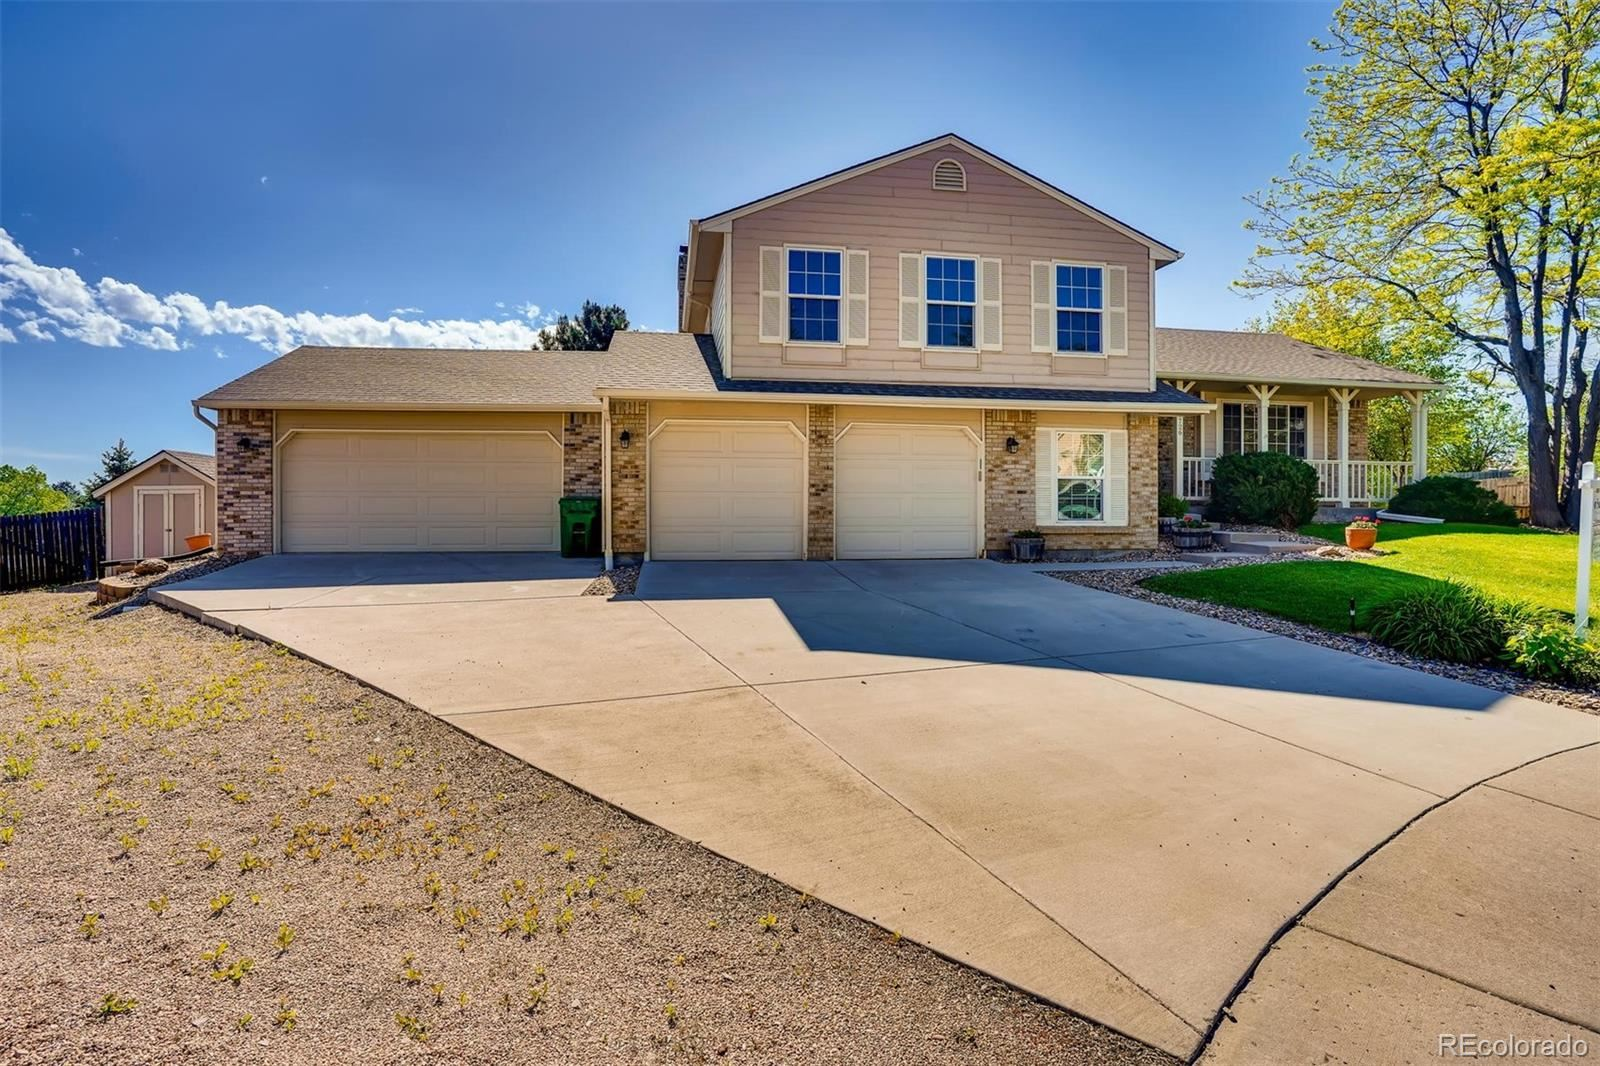 9726 W Morraine Avenue, Littleton, CO 80127 - #: 9279779